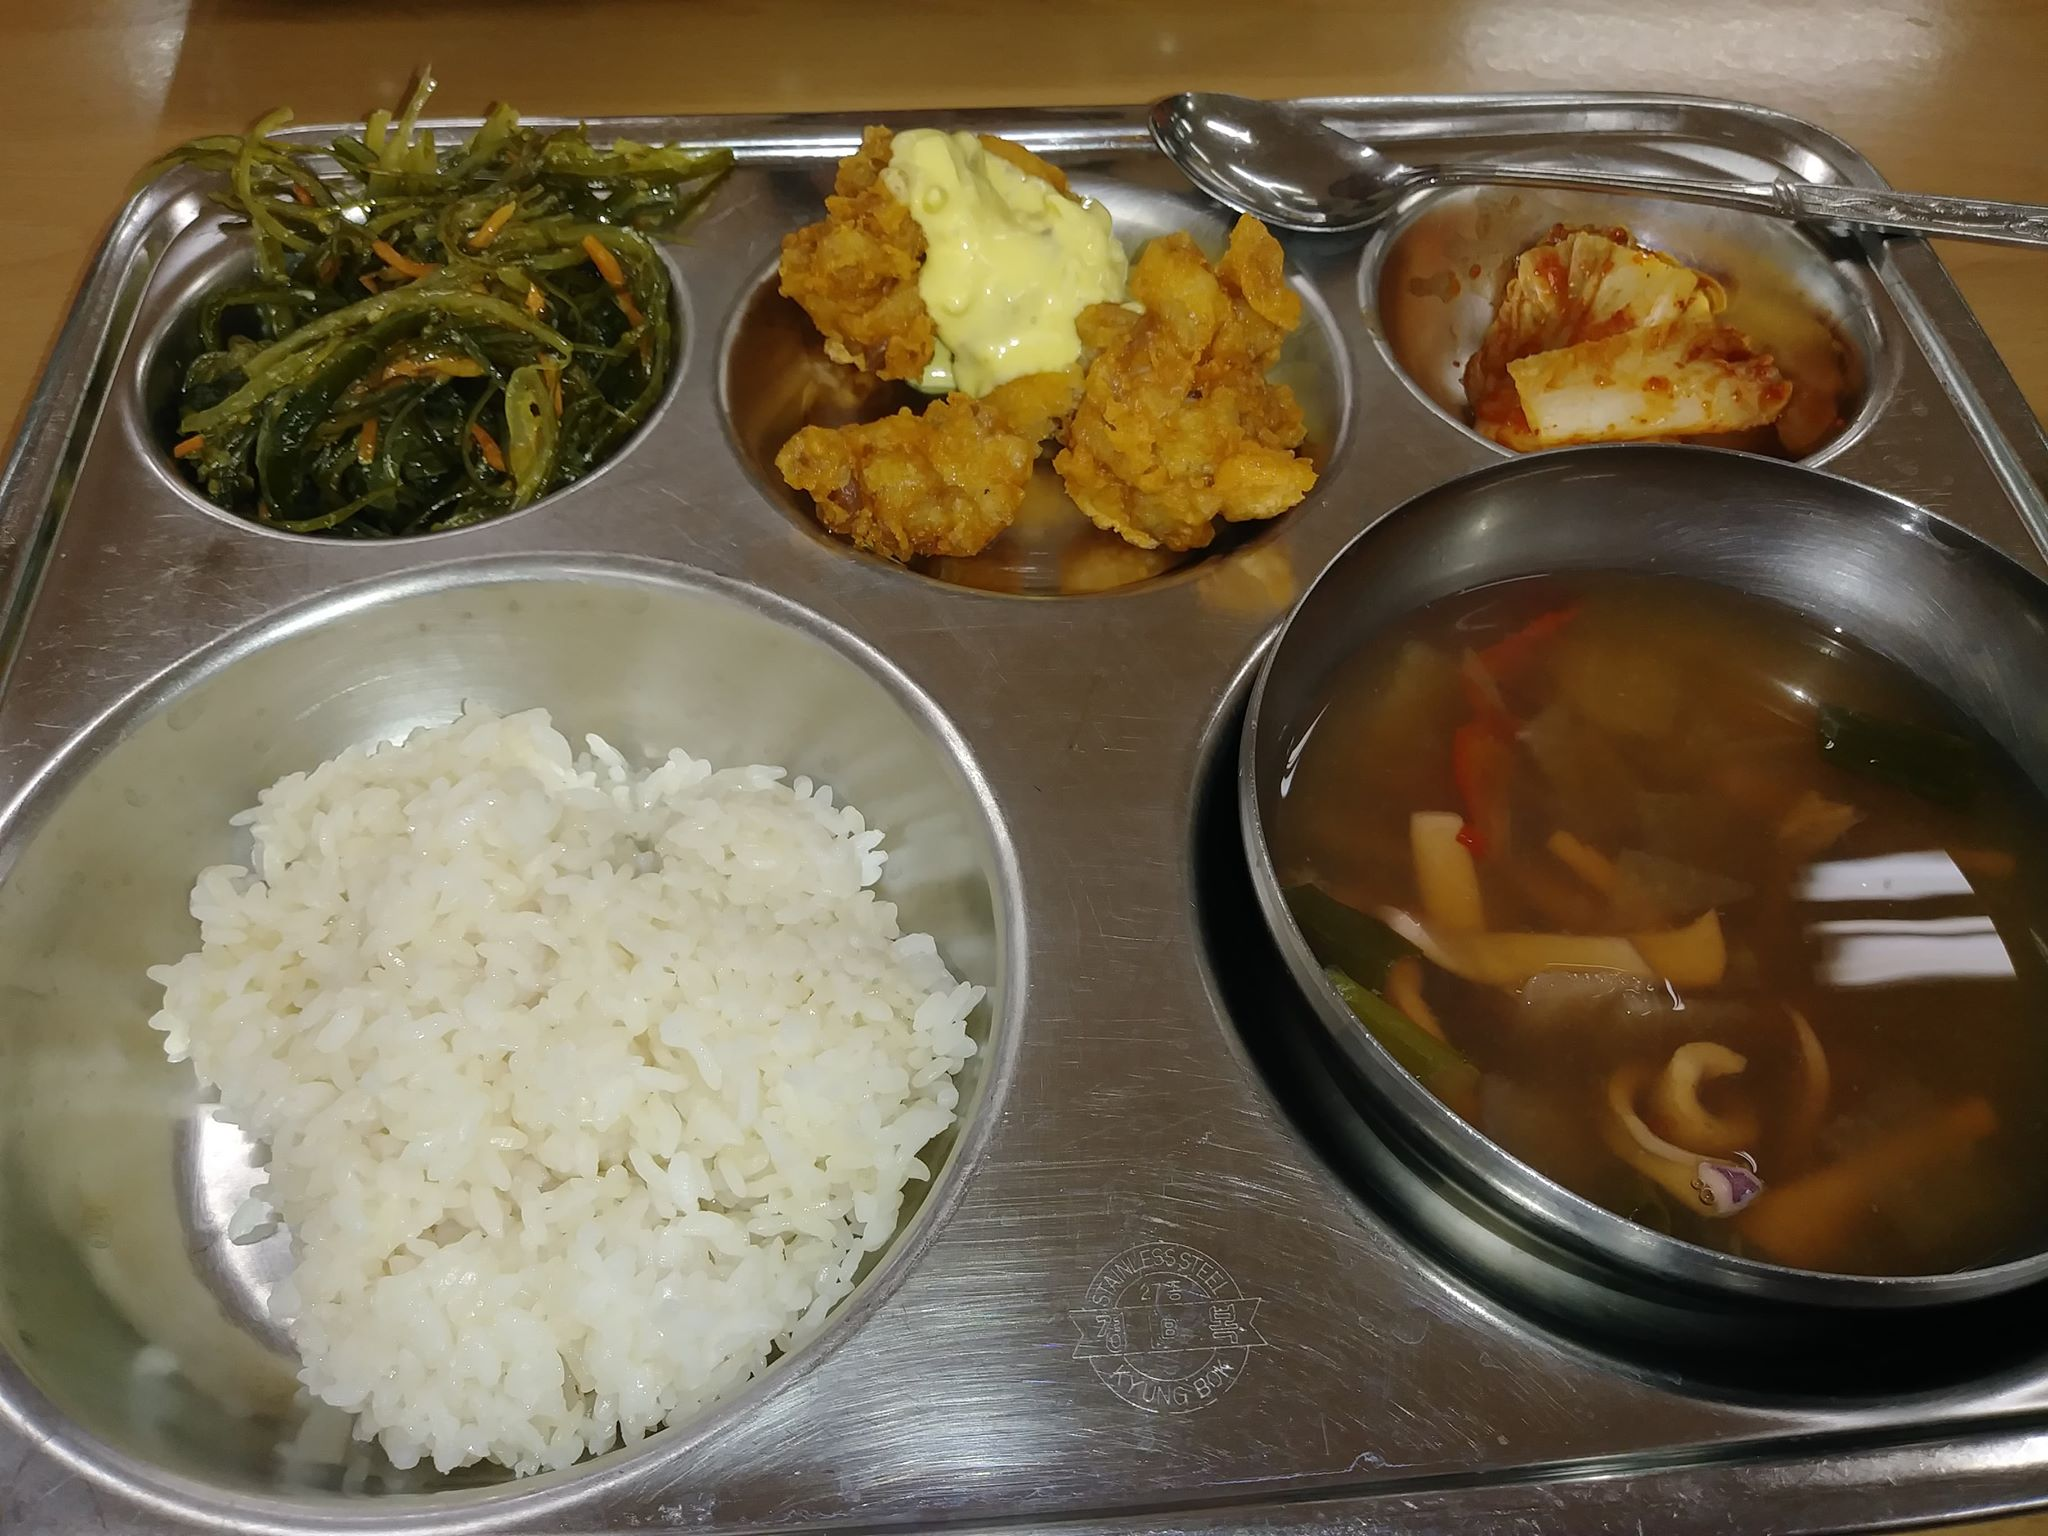 Food_SchoolFoodKorea_body04.jpg.jpg